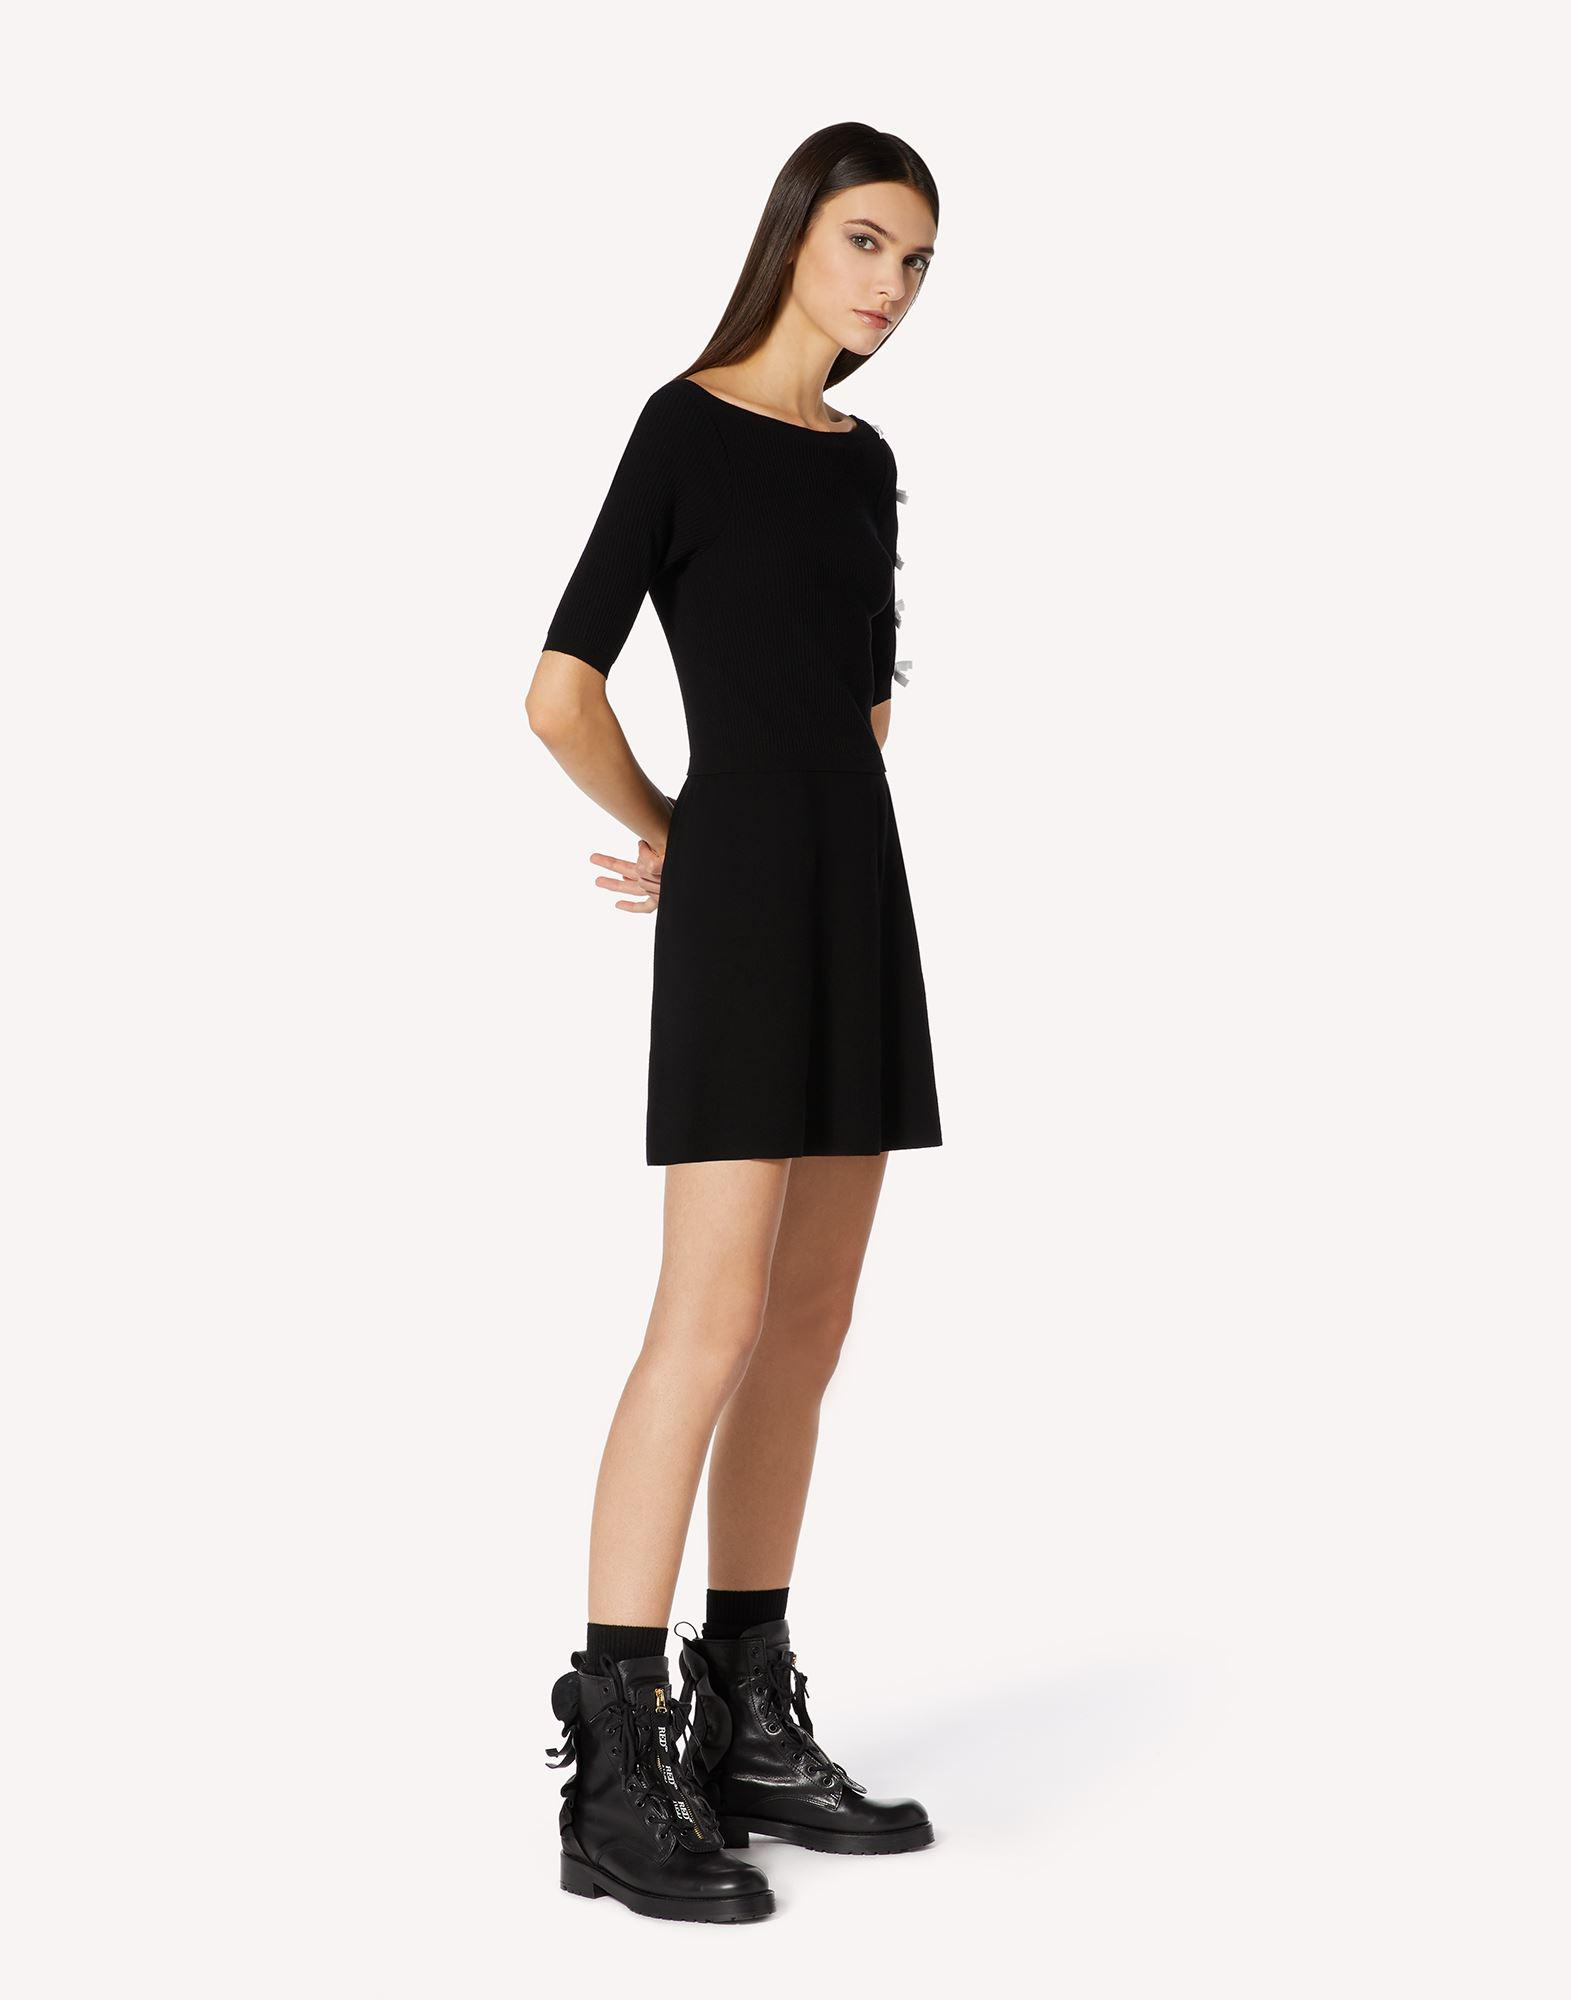 STRETCH VISCOSE KNIT DRESS WITH BOW DETAILS 2